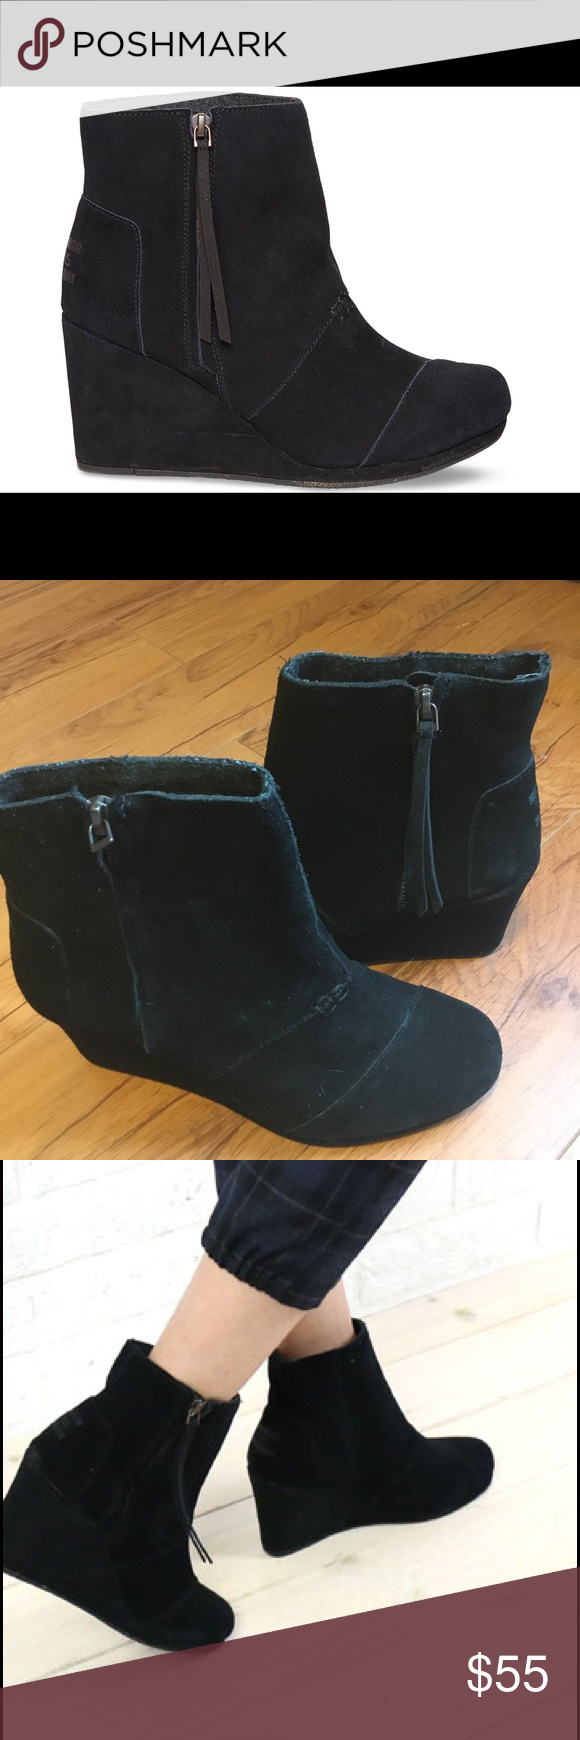 TOMS black suede desert wedge boots NWOT These boots are brand new never worn. I tried them on and walked around the store in them but when I got home I noticed the little black tassel on one zipper was missing. The next day my mom got me another pair for my b day lol. These are so cute and sexy they go with everything!!! TOMS Shoes Ankle Boots & Booties